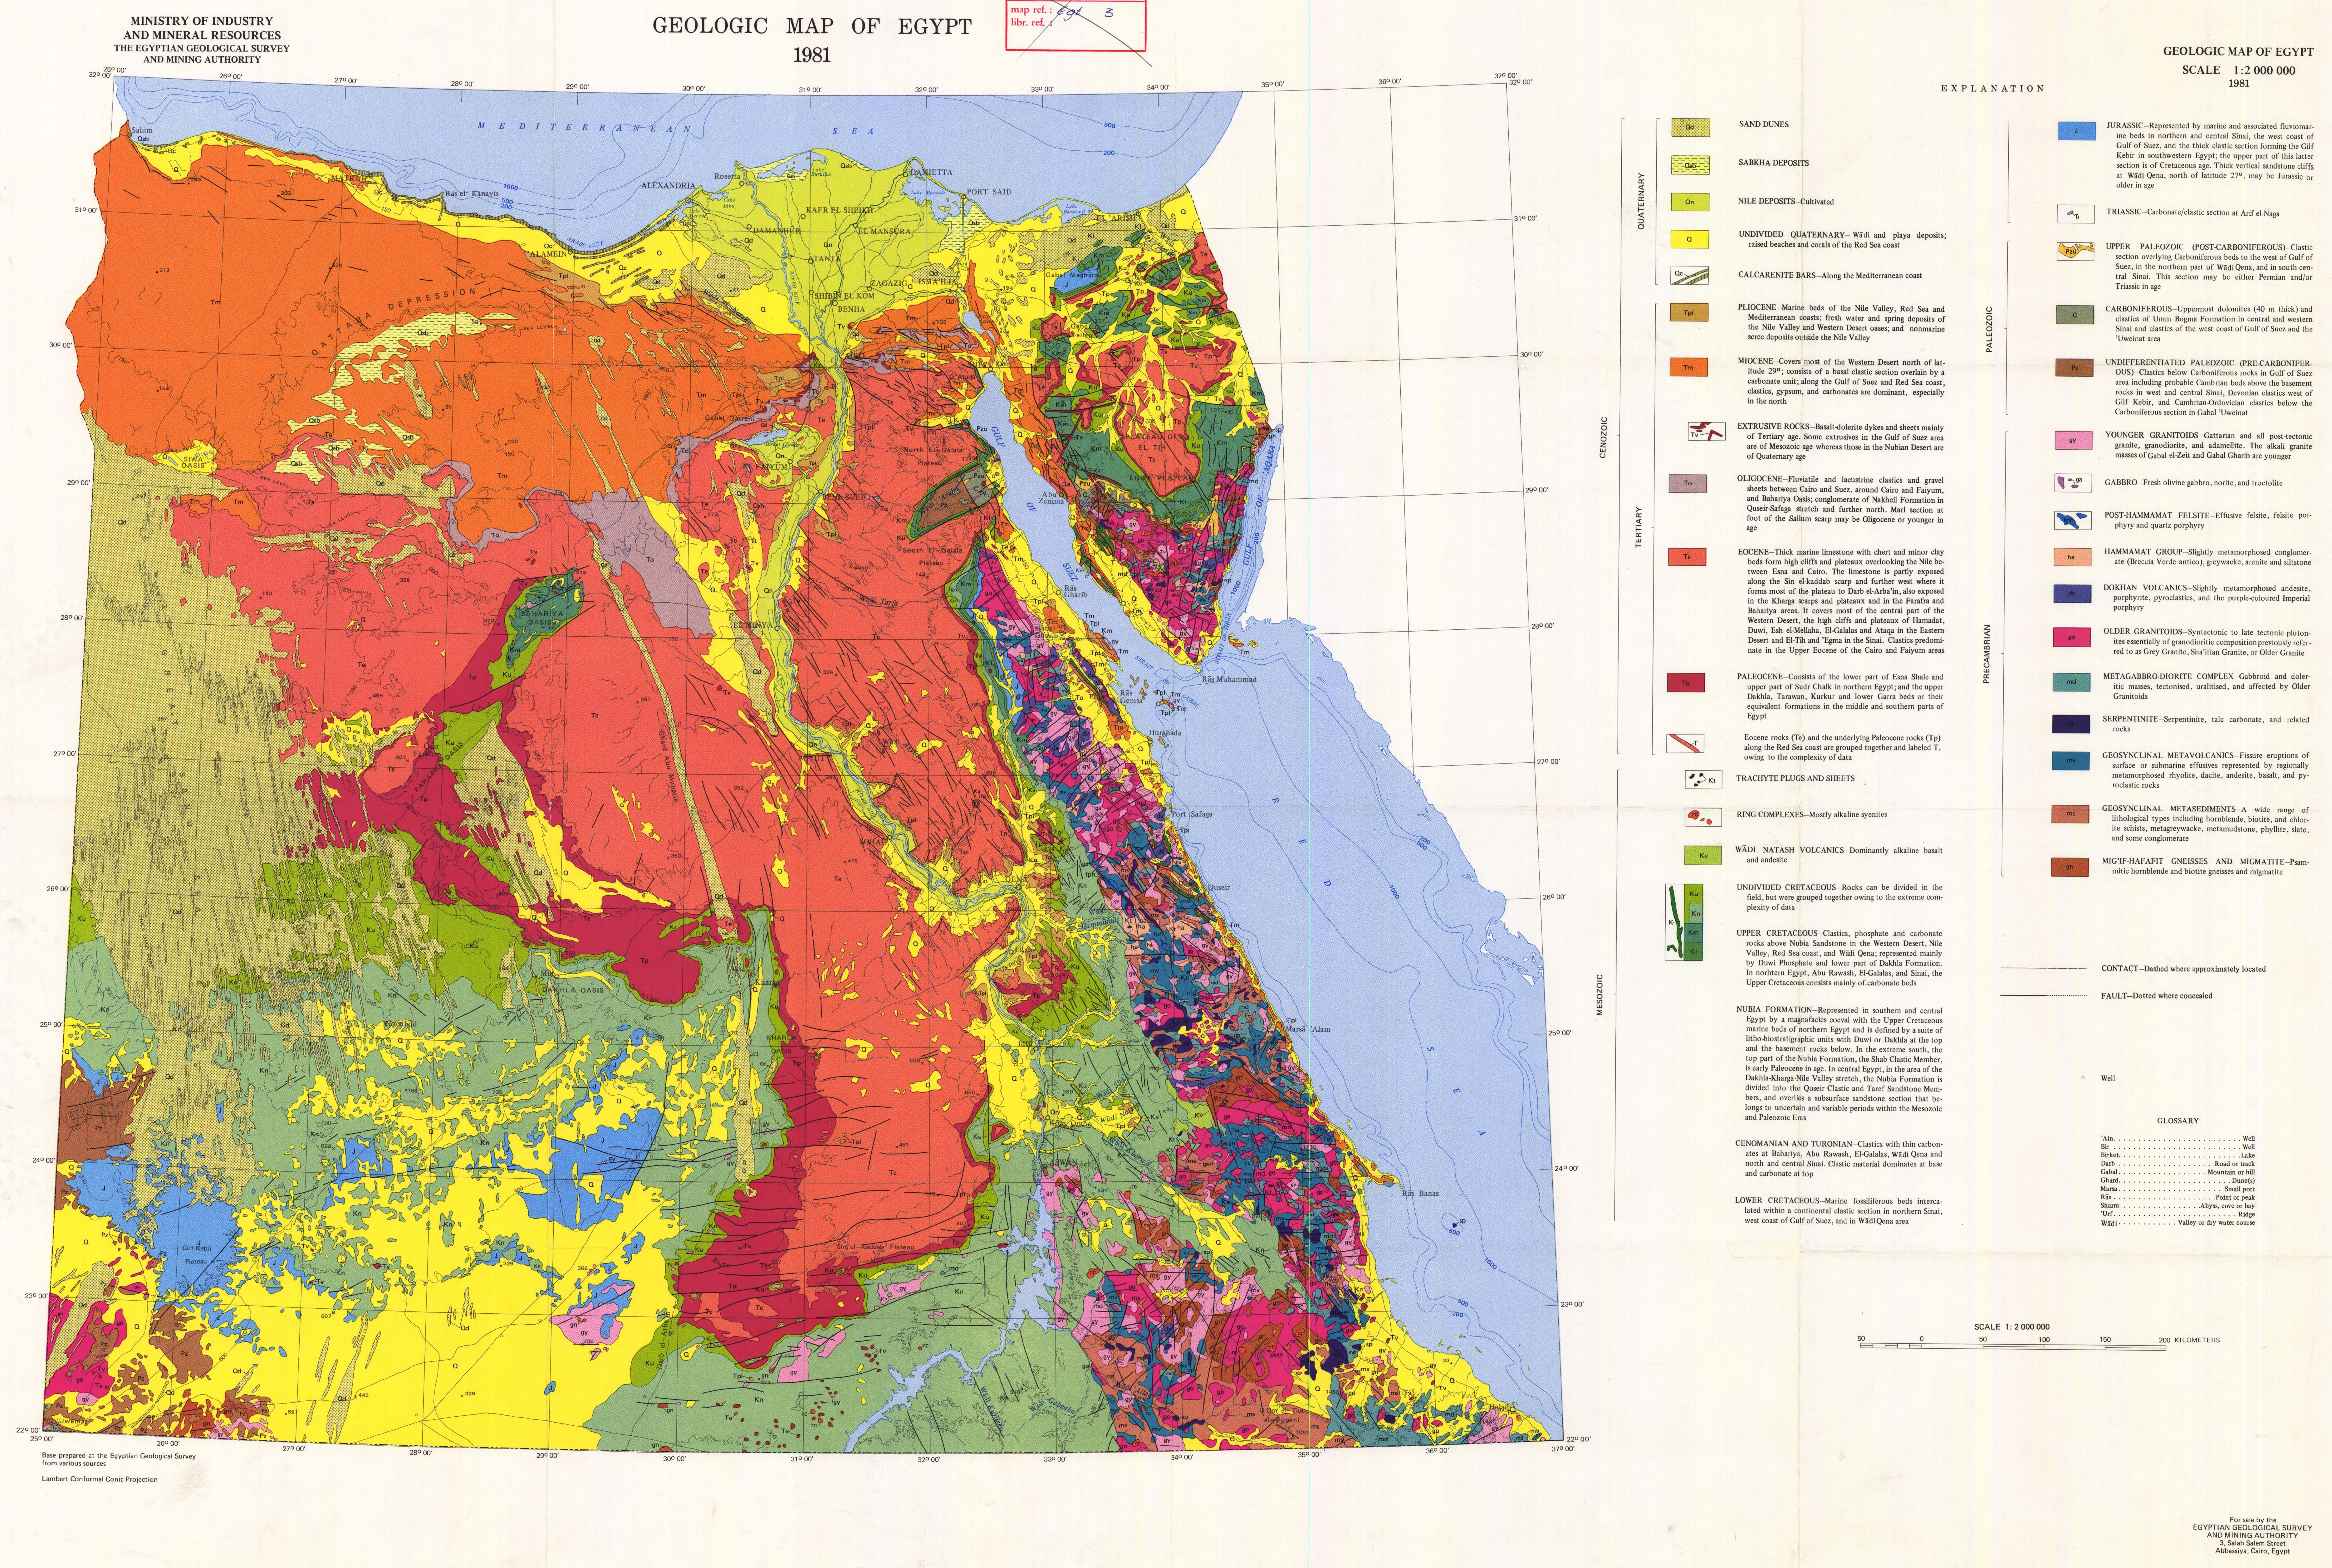 Geologic Map of Egypt. - ESDAC - European Commission on raised-relief map, peru geology map, thematic map, uk great britain map, flow map, isopach map, strike and dip on map, alabama geological formation map, pictorial maps, william smith, relief map, treasure map, index map, topographic map, elevation map, russia geology map, elwha washington location on map, world map, contour map, aeronautical chart, choropleth map, conic projection map, geotechnical engineering, papua new guinea geological map, bathymetric map, rocks and minerals washington state map, geographic map, nautical chart, weather map,